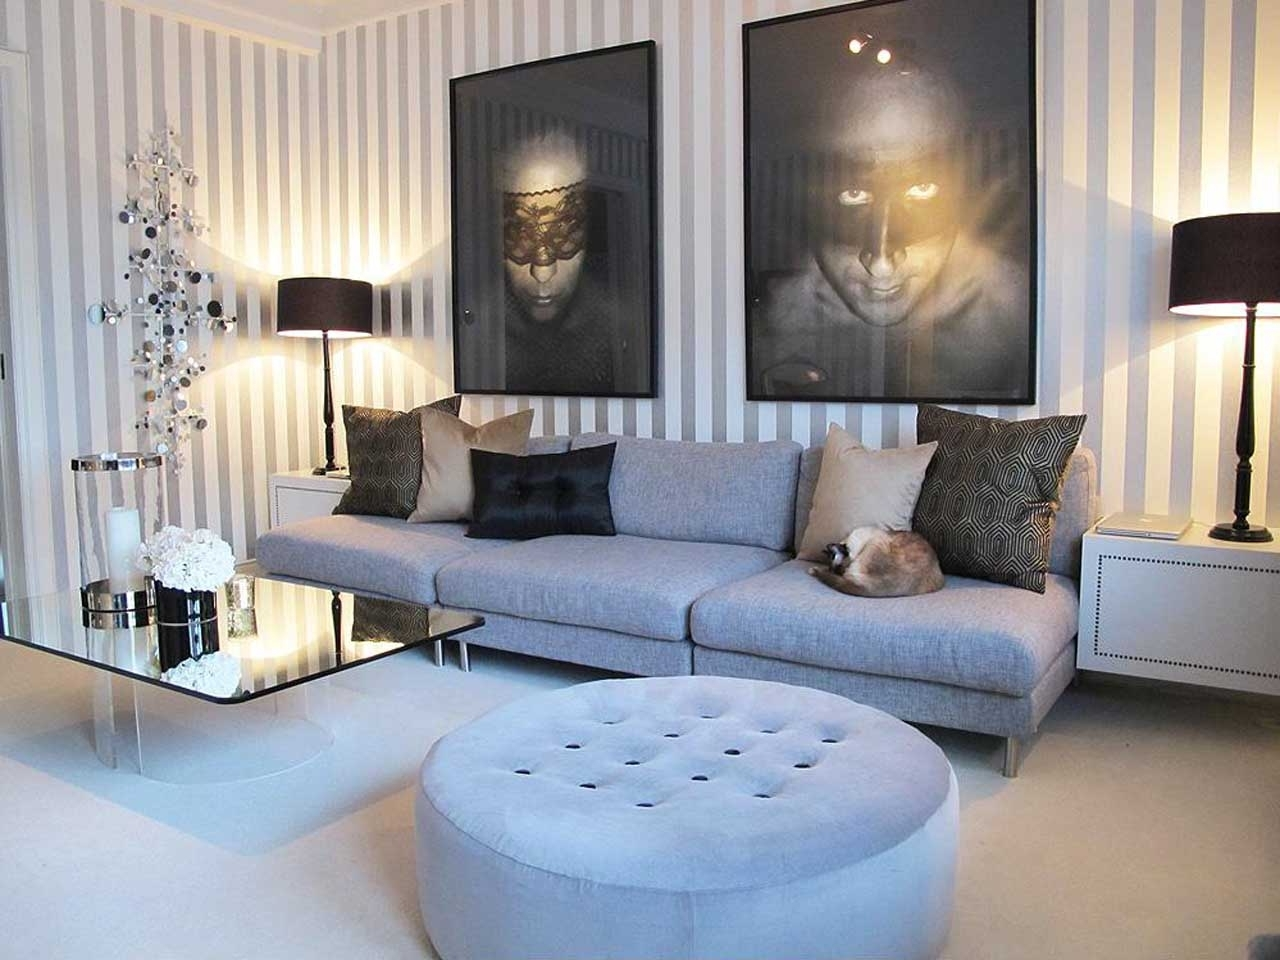 Living Room Coffee Table Lamps Intended For Best And Newest Funiture: Contemporary Living Room Furniture With Grey Sofa Made Of (View 7 of 15)